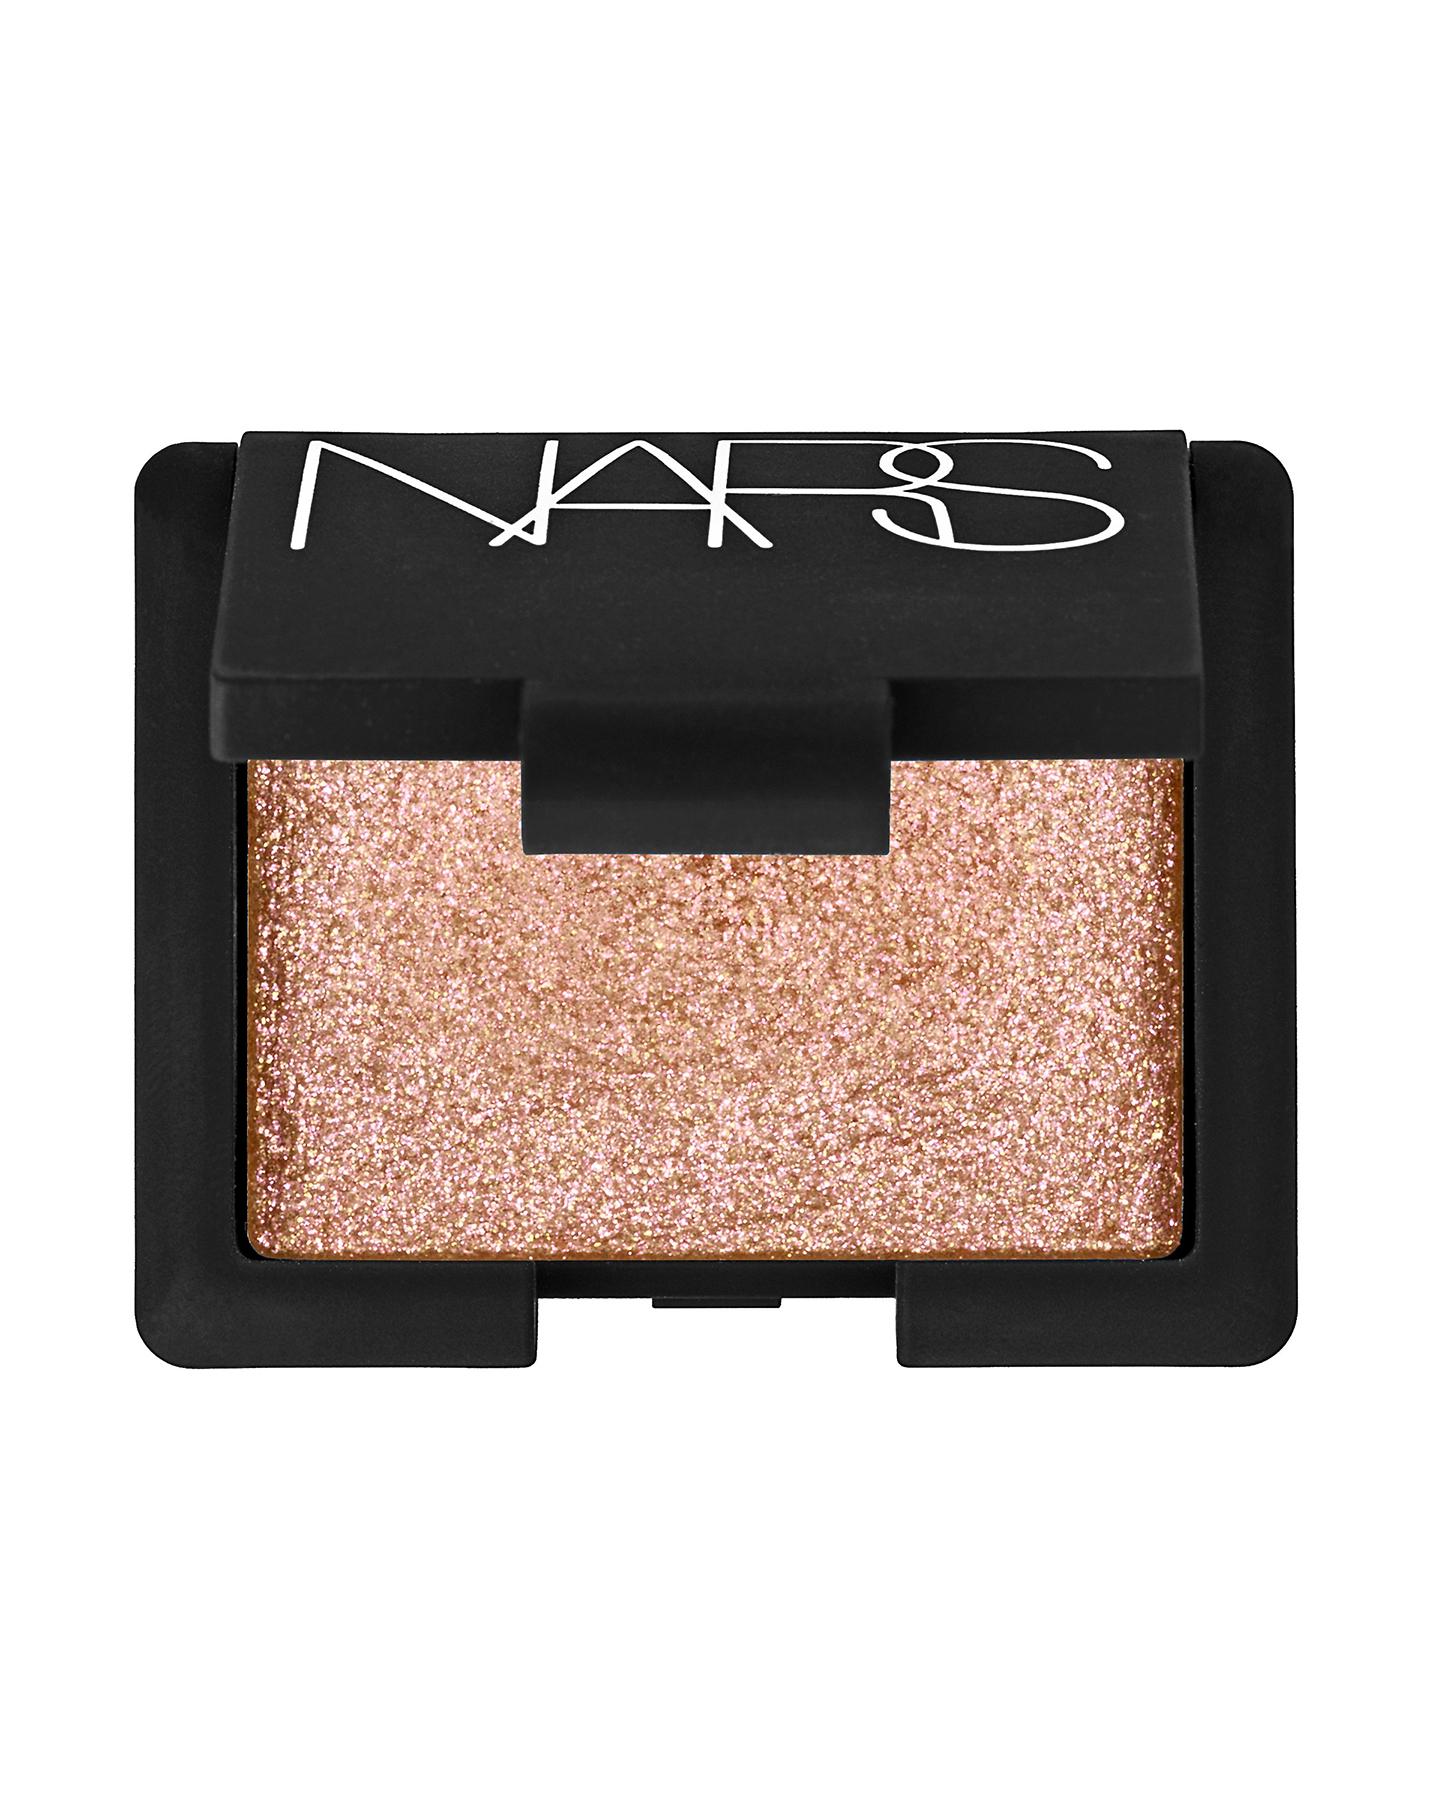 Nars Hardwired Eyeshadow in Rose Gold